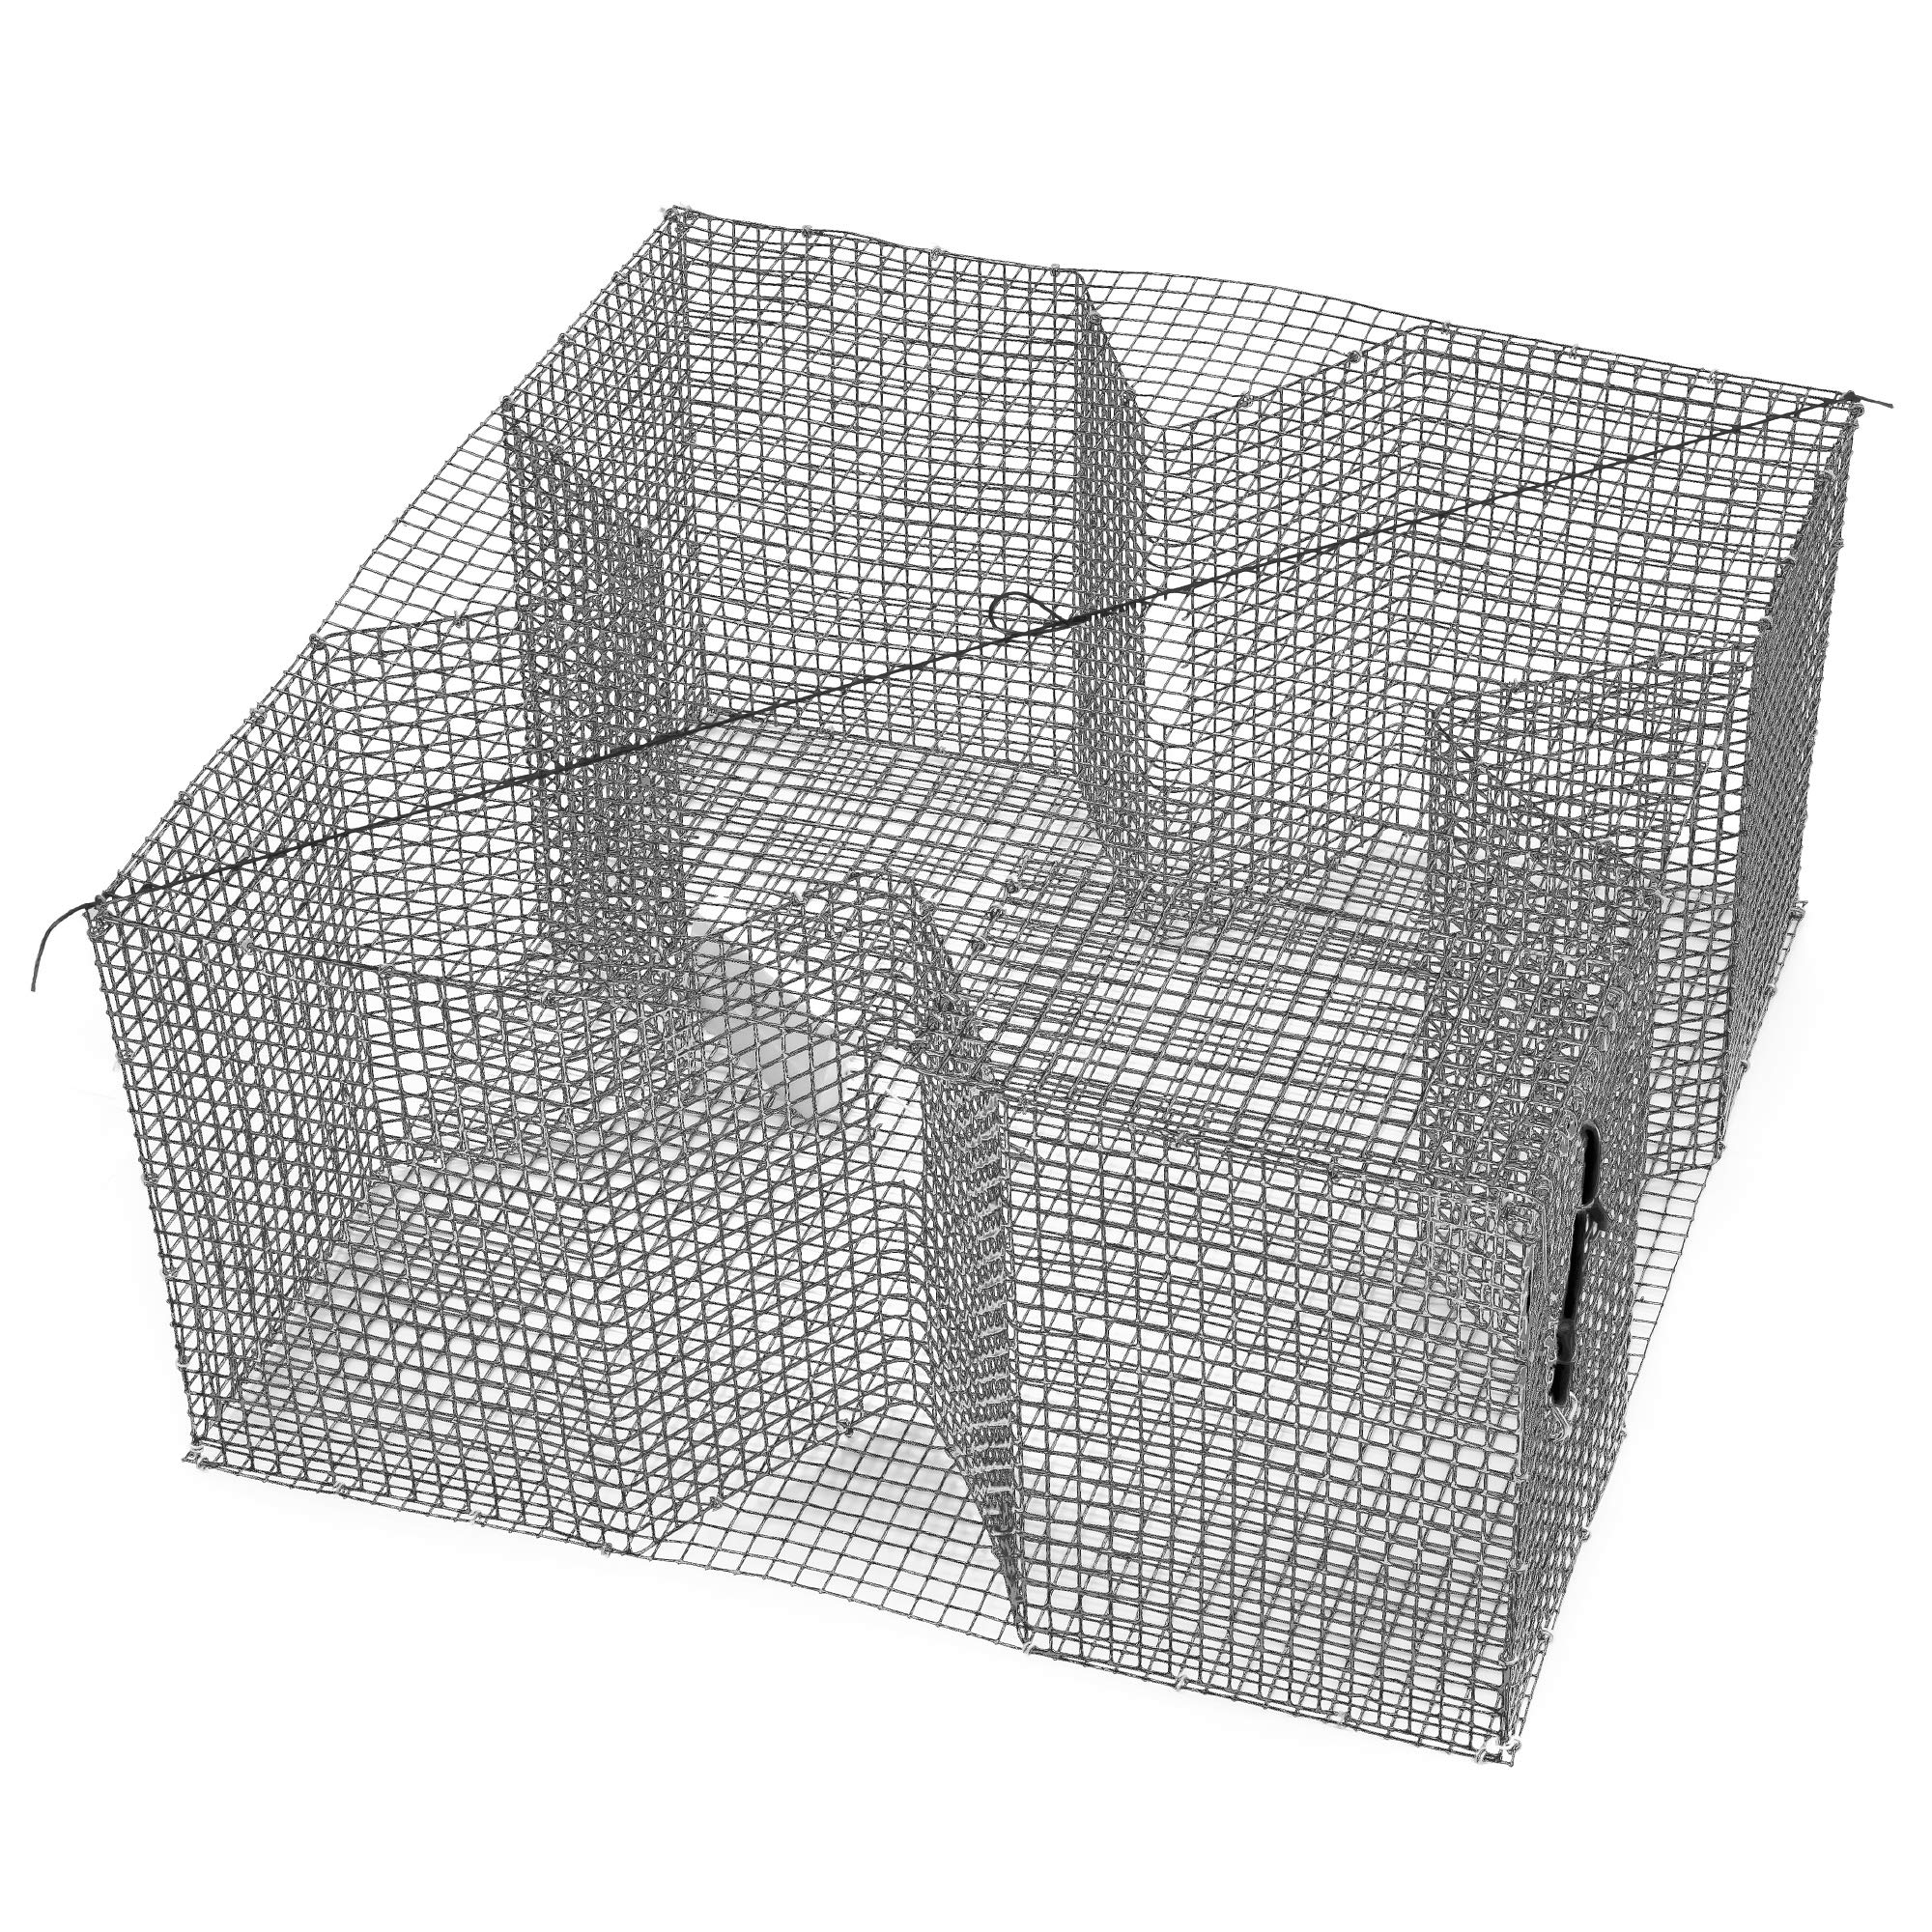 Nets & More Bait Trap. 24'' x 24'', 12'' deep. Galvanized Wire for Bream and Other Bait Fish. Made in The USA.